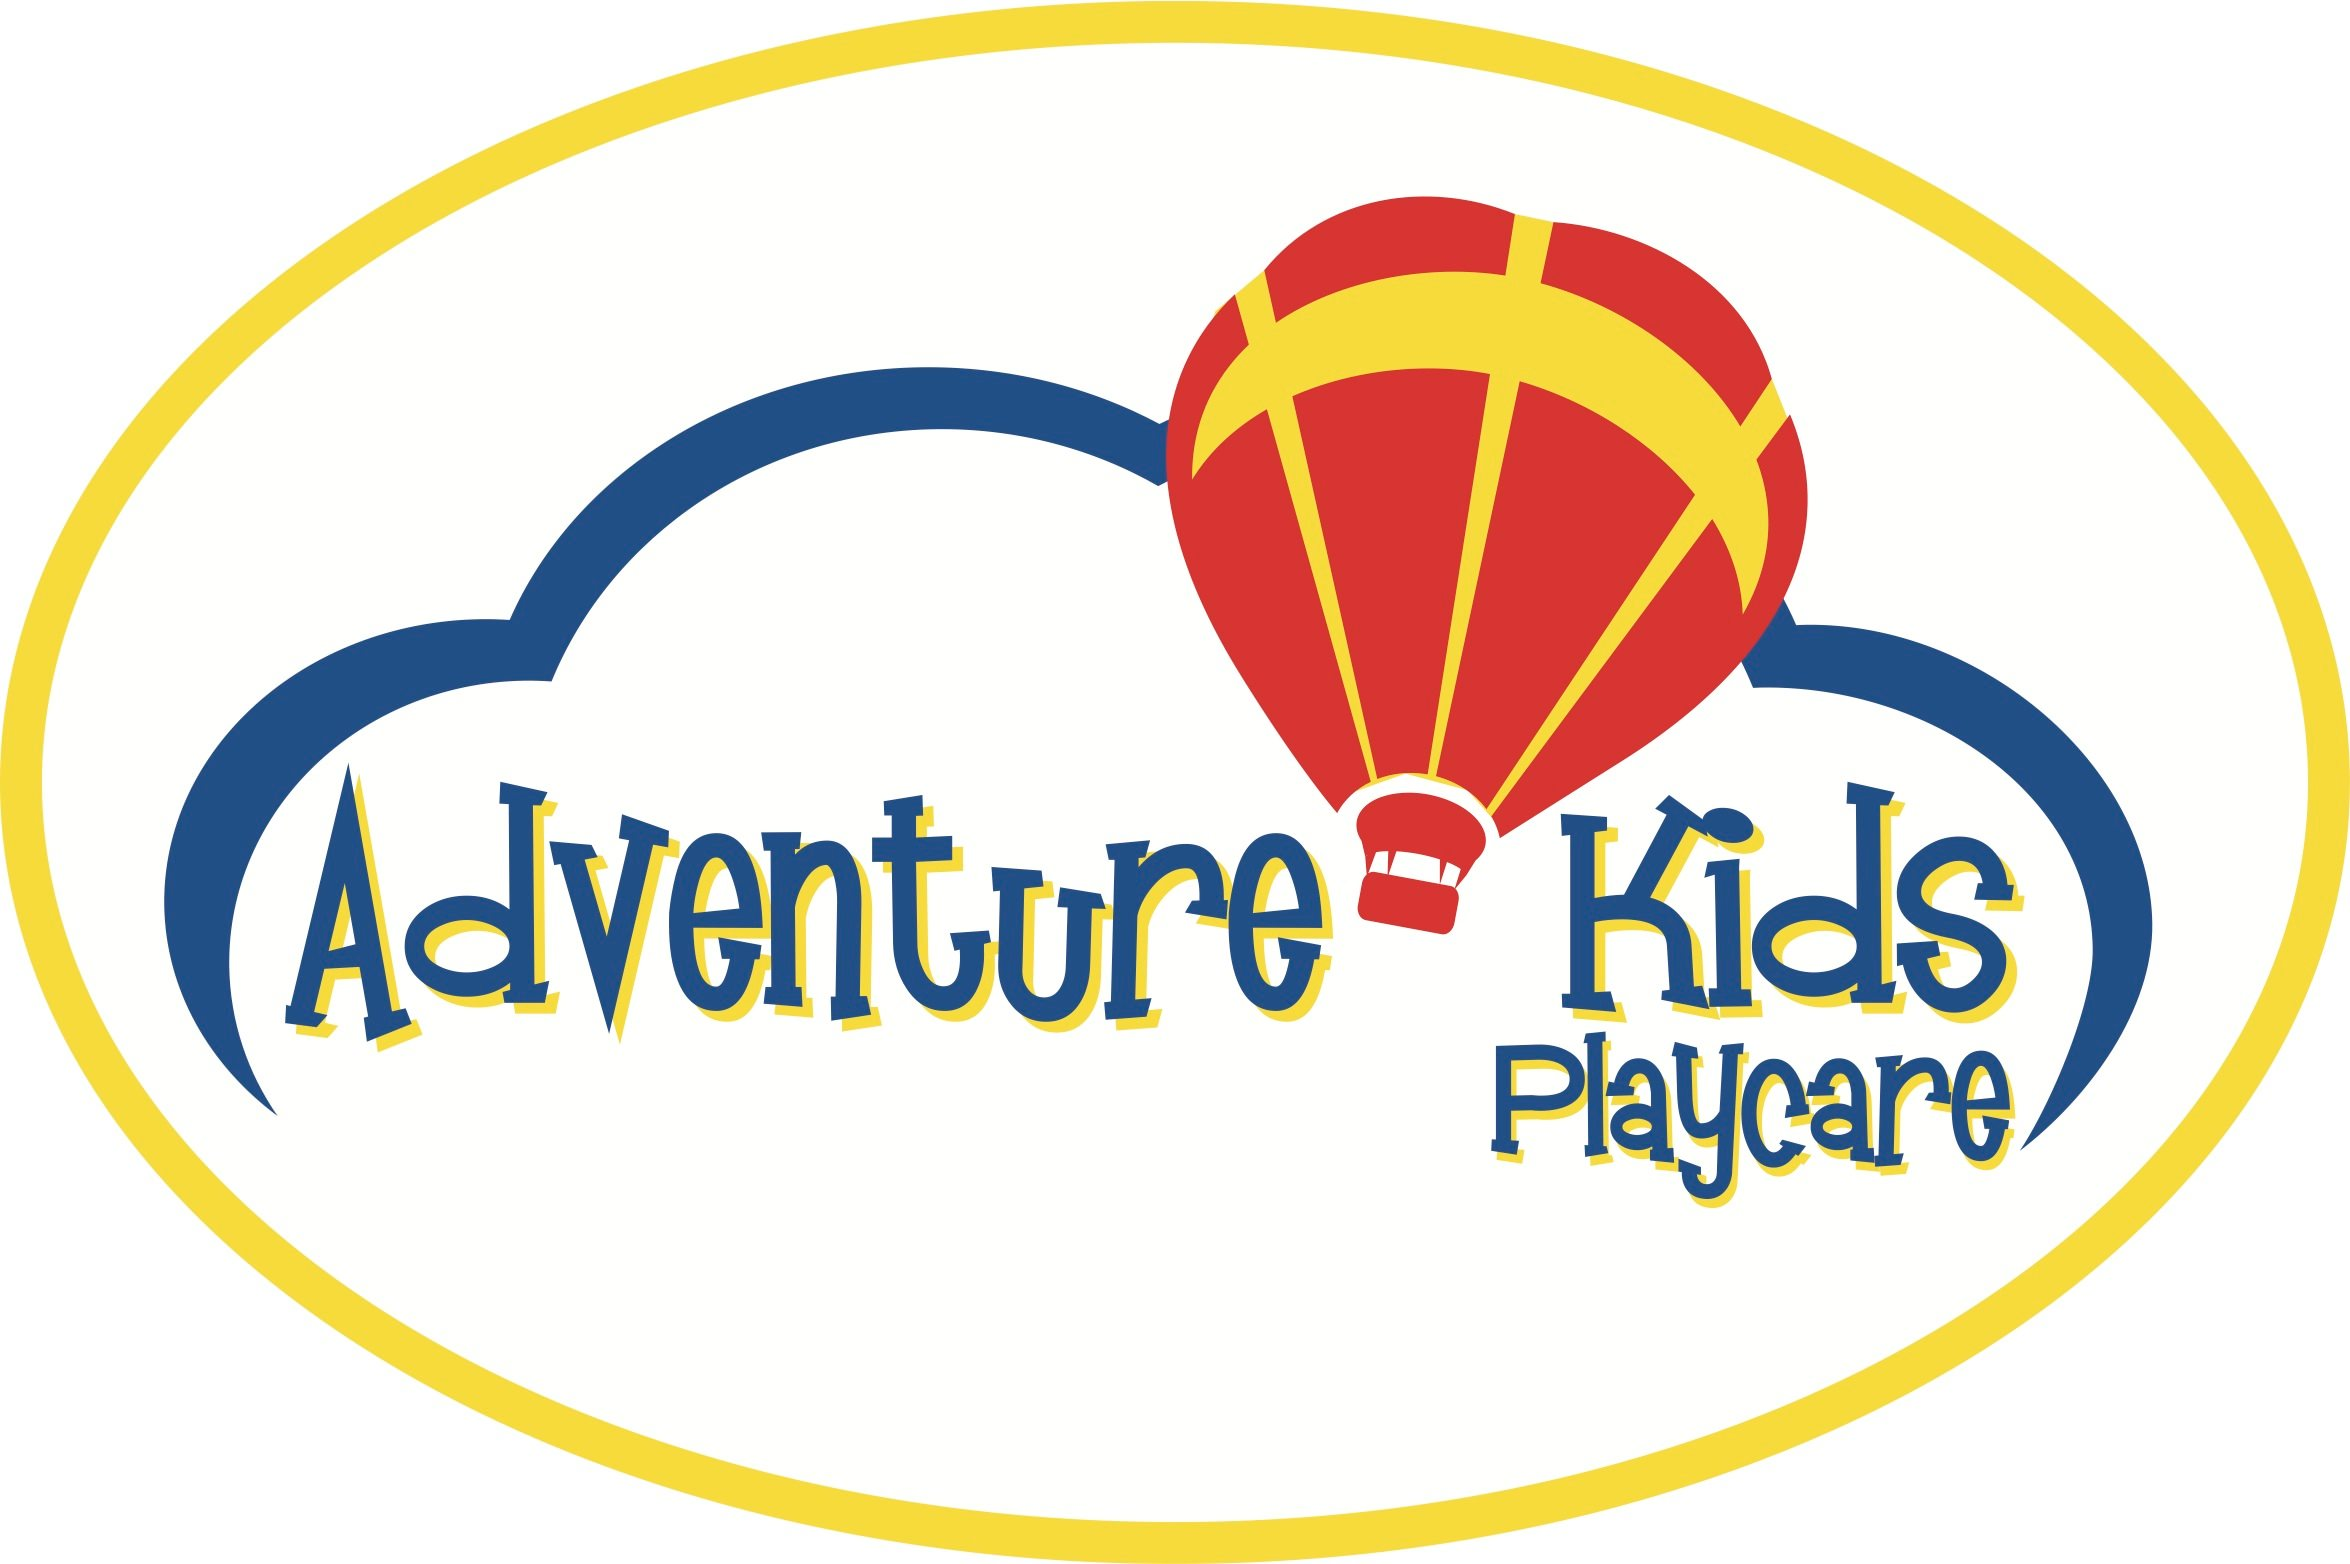 Adventure Kids Playcare Frisco As Needed Childcare Solution